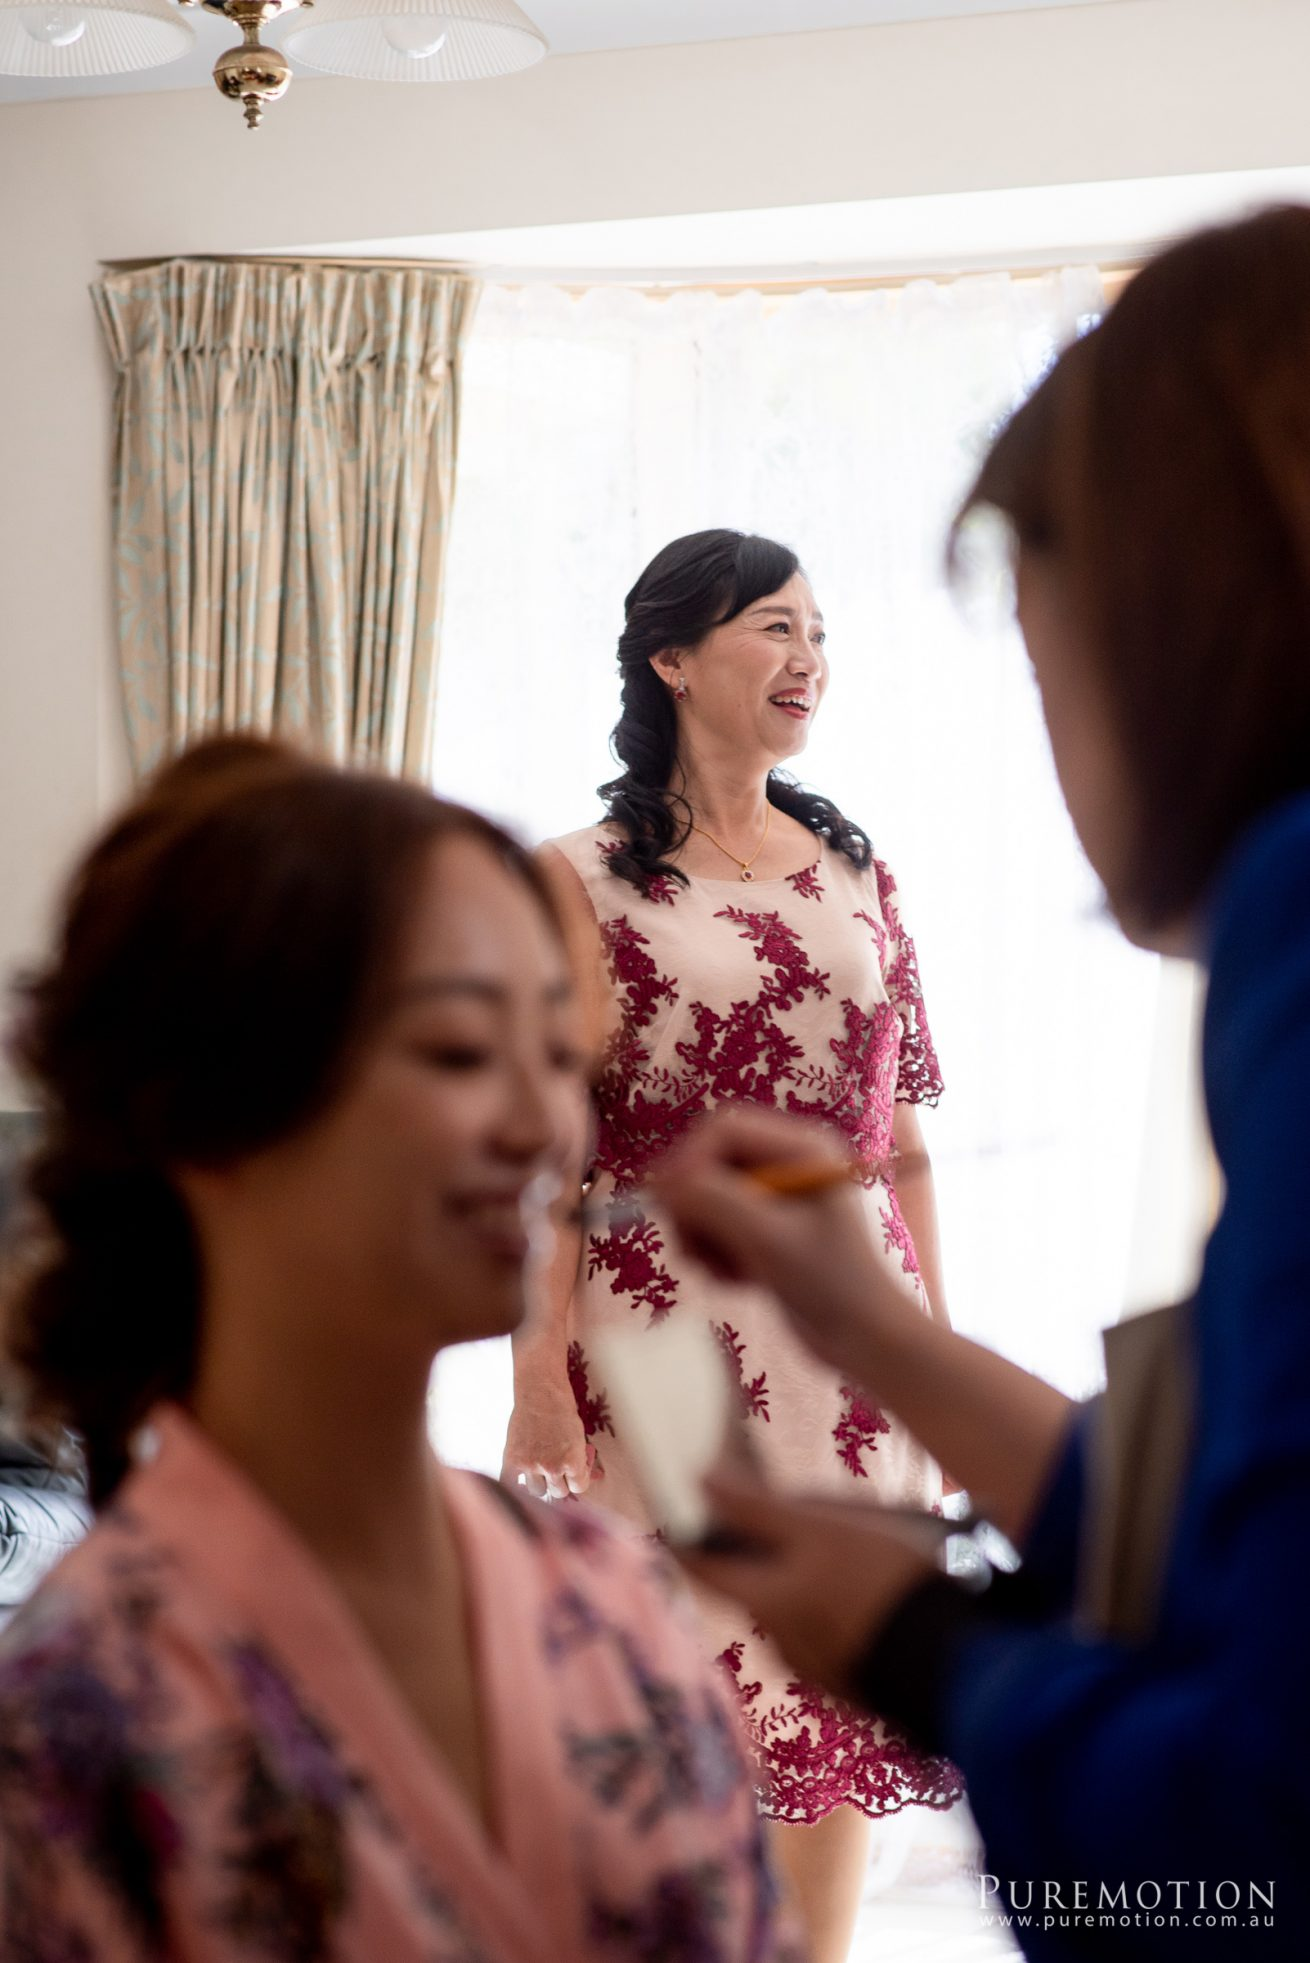 190309 Puremotion Wedding Photography Brisbane Alex Huang AngelaSunny_Edited-0001